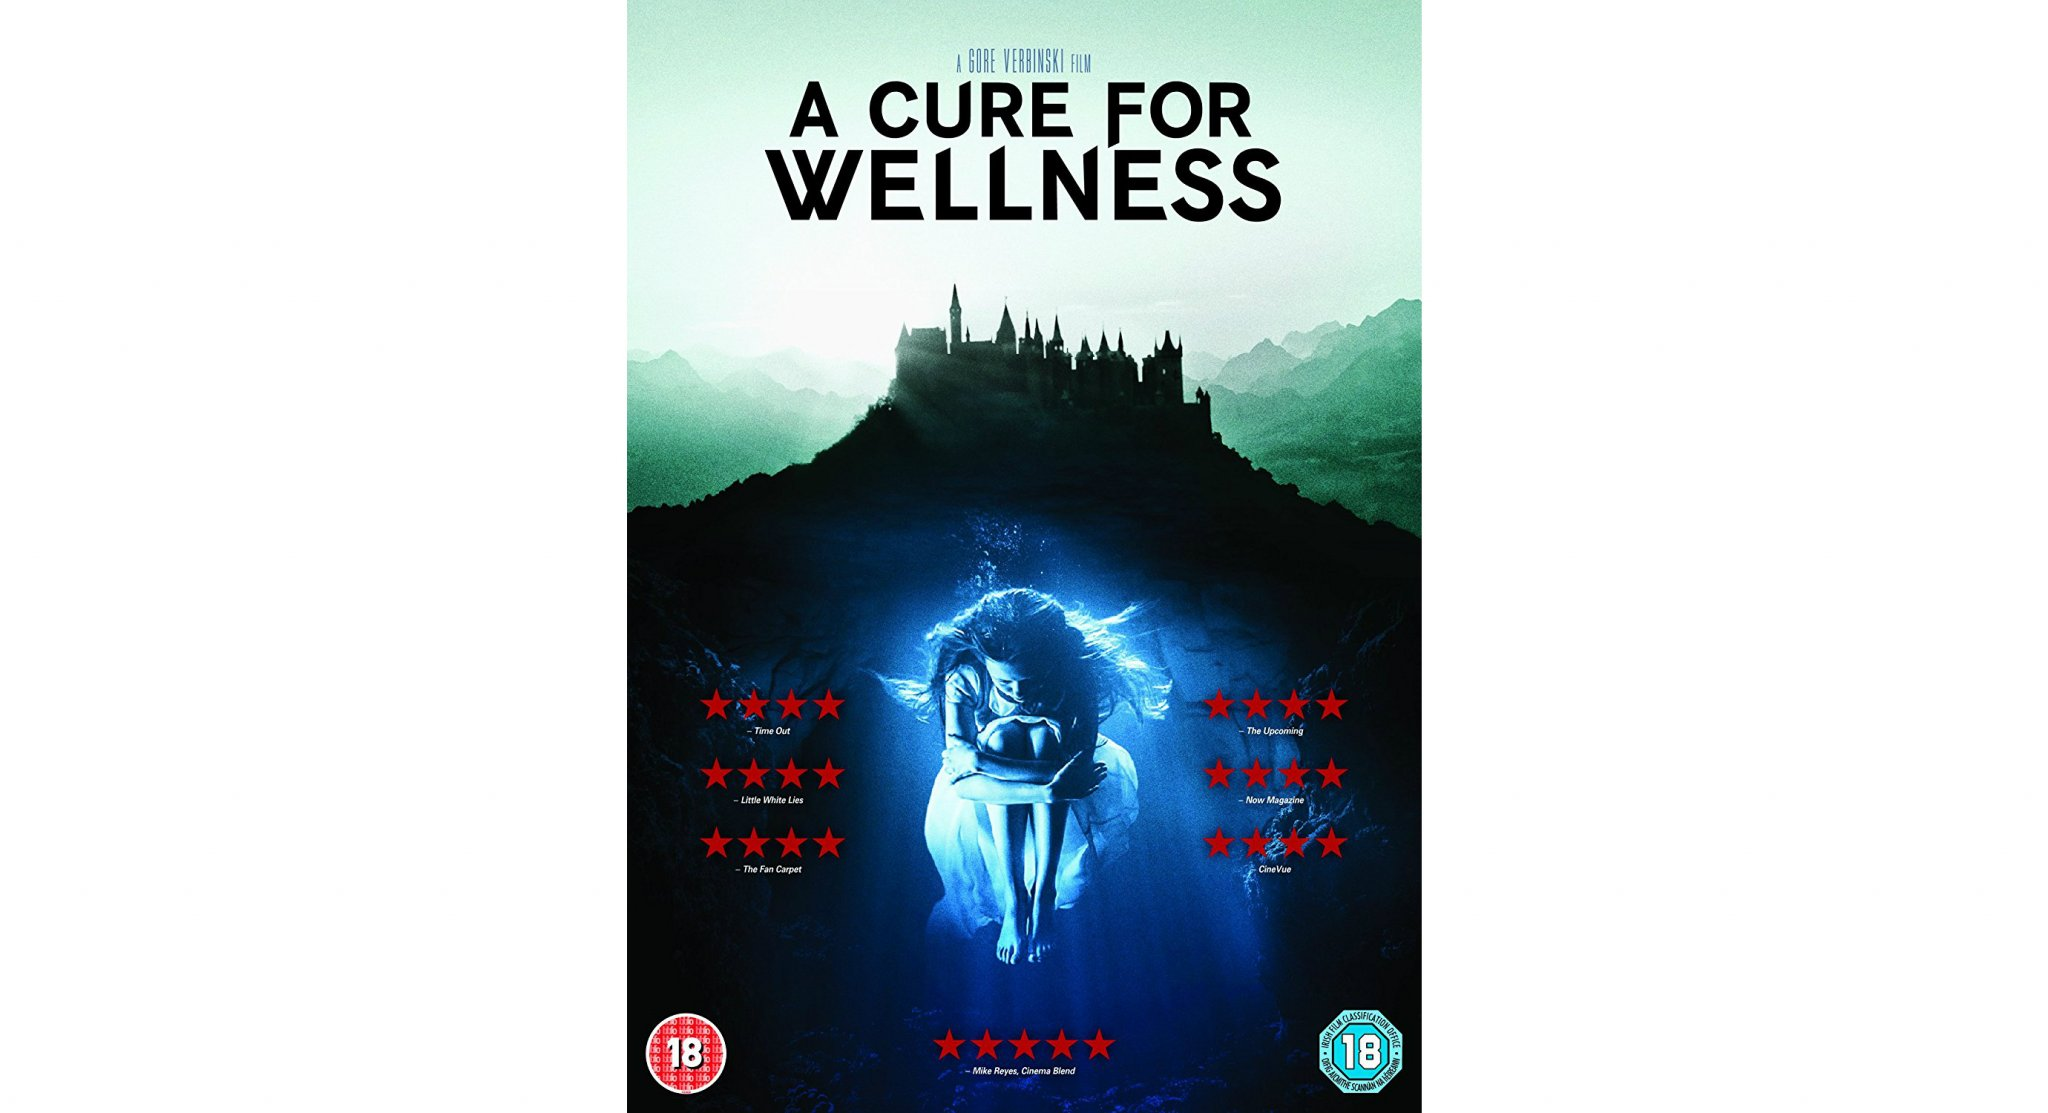 A.Cure.For.Wellness